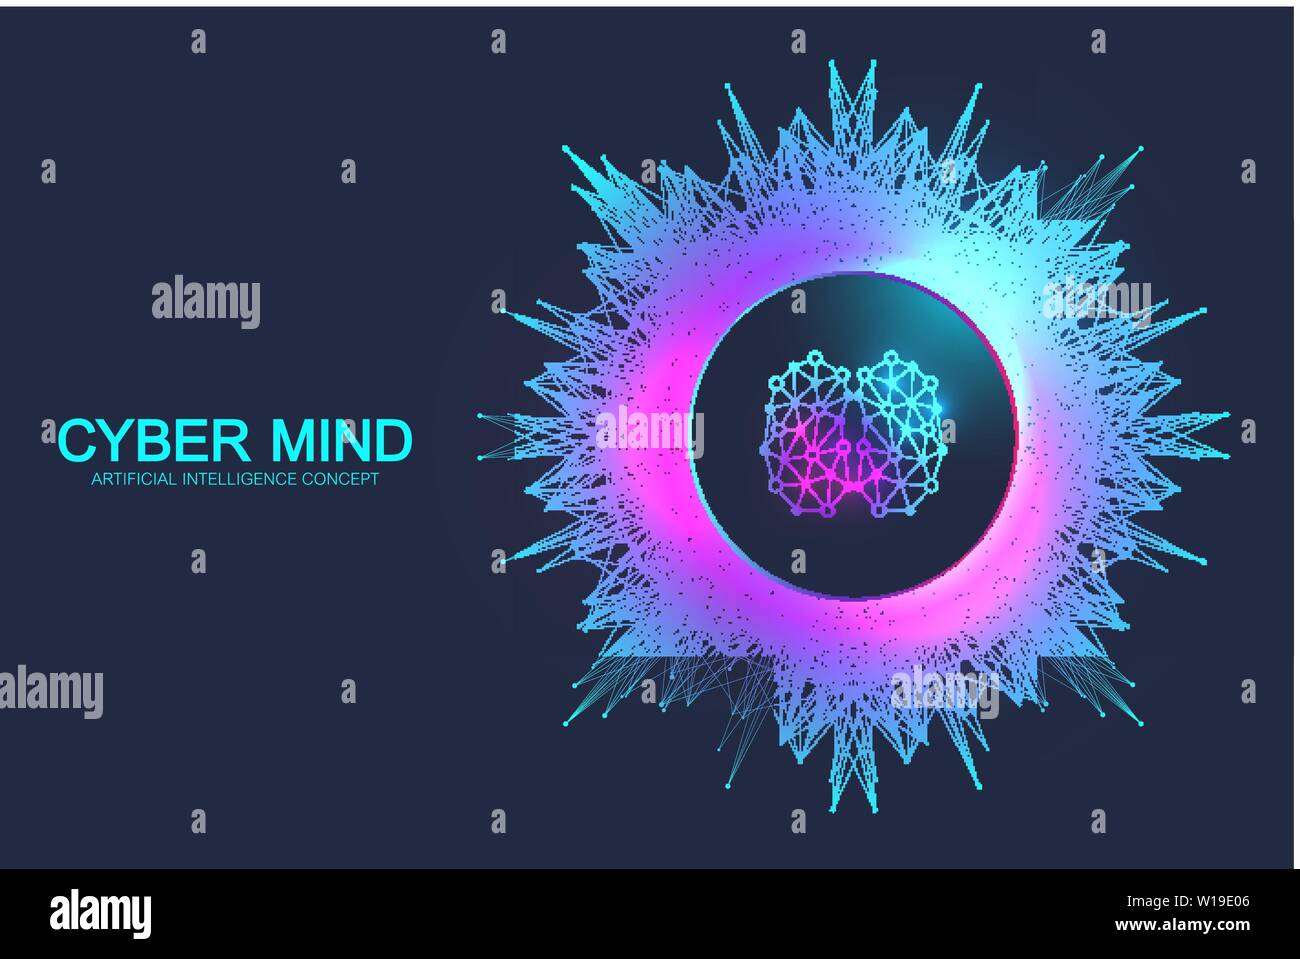 Cyber mind and Artificial Intelligence concept. Neural networks and another modern technologies concept. Brain Analysis. Futuristic cyber humanoid Stock Vector